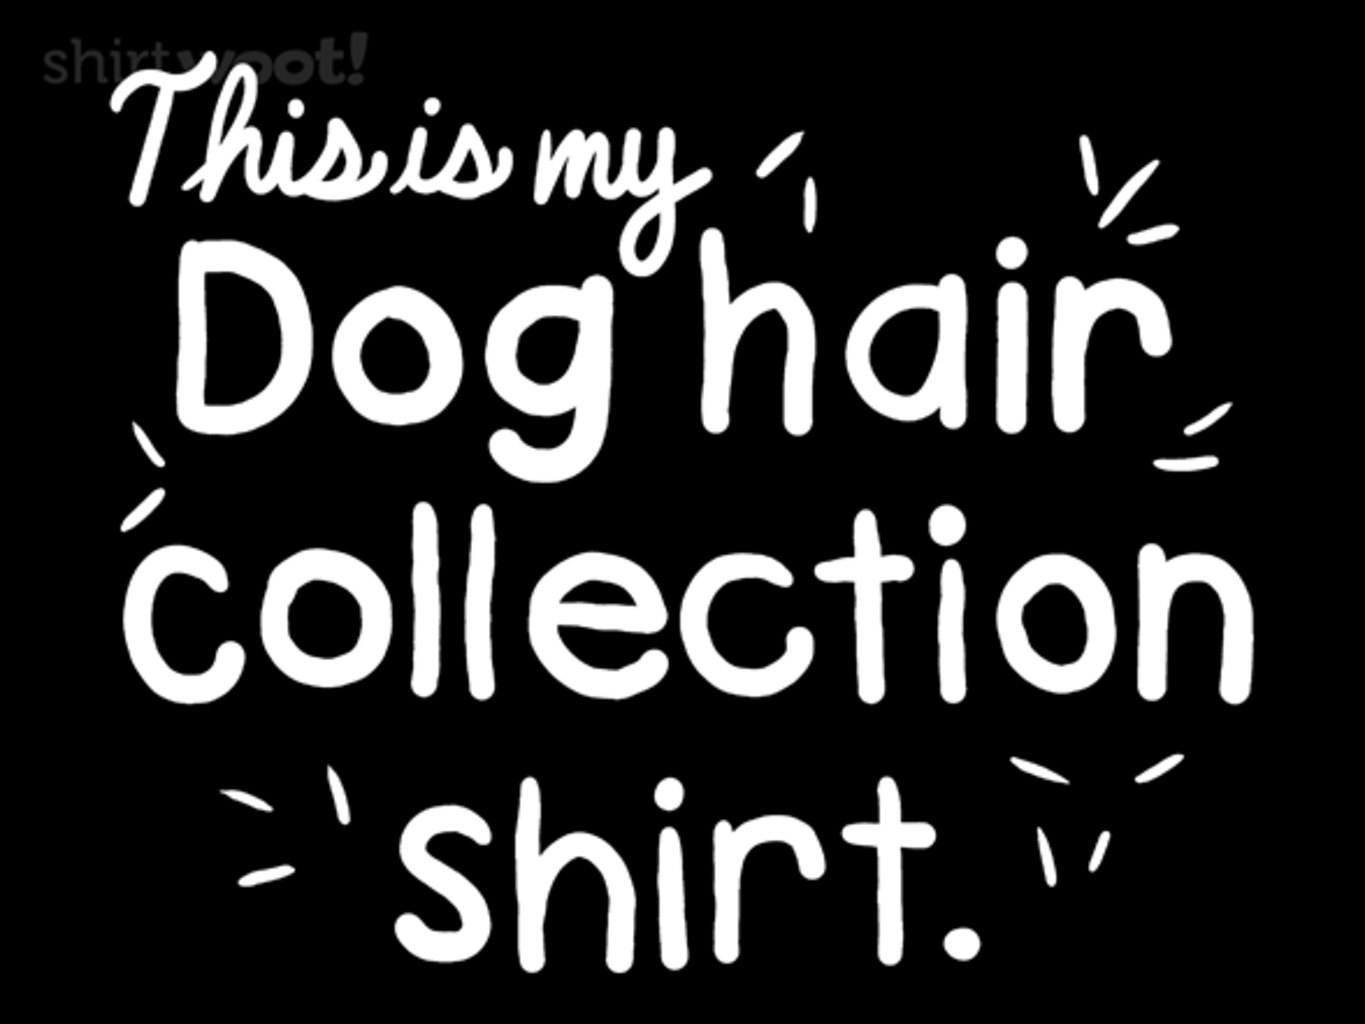 Woot!: Dog Hair Collector